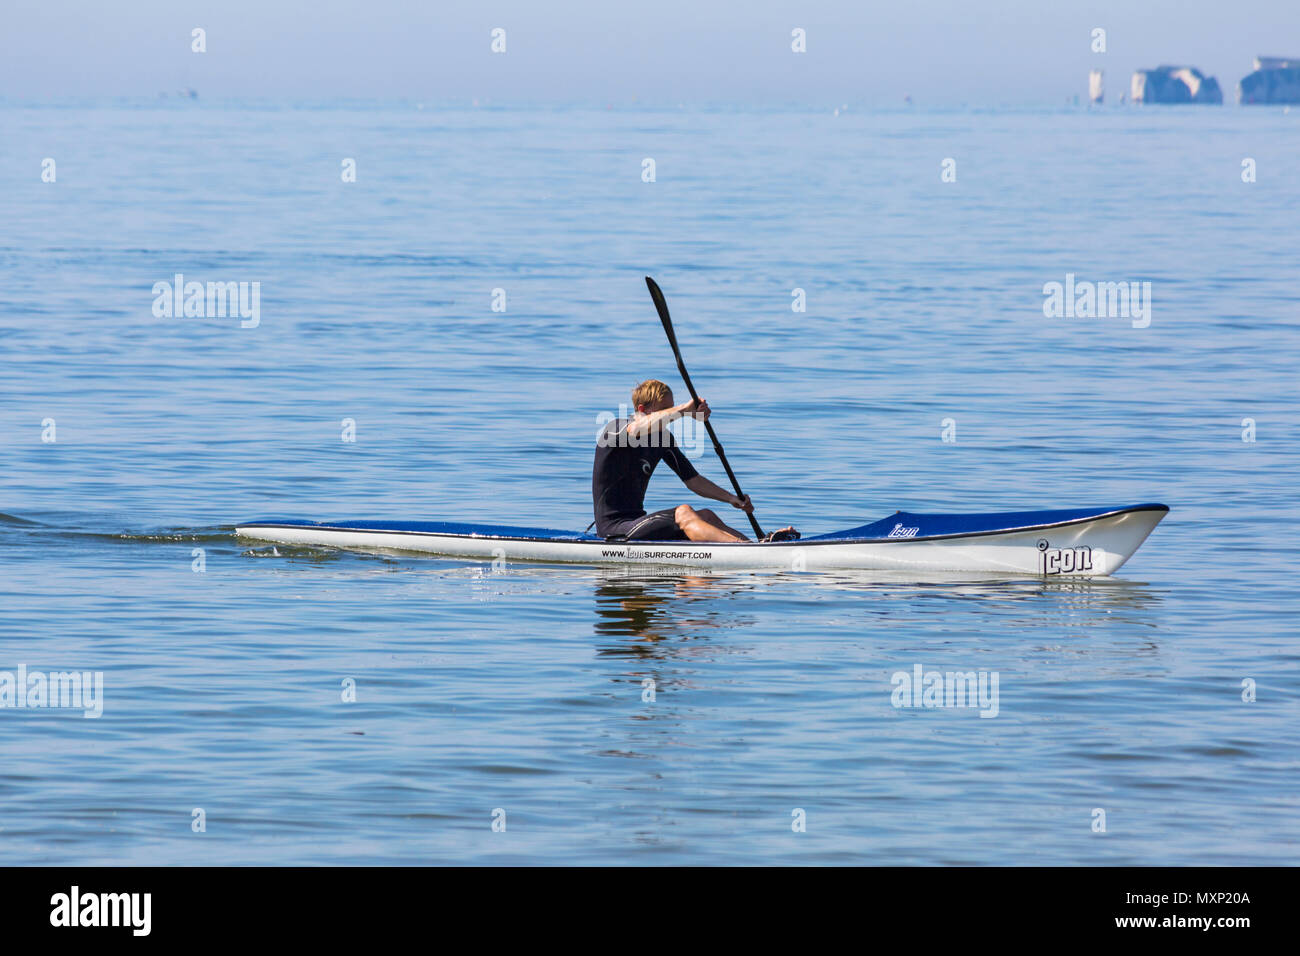 Man in a surf ski at Branksome Chine, Poole, Dorset, England UK in June - Stock Image